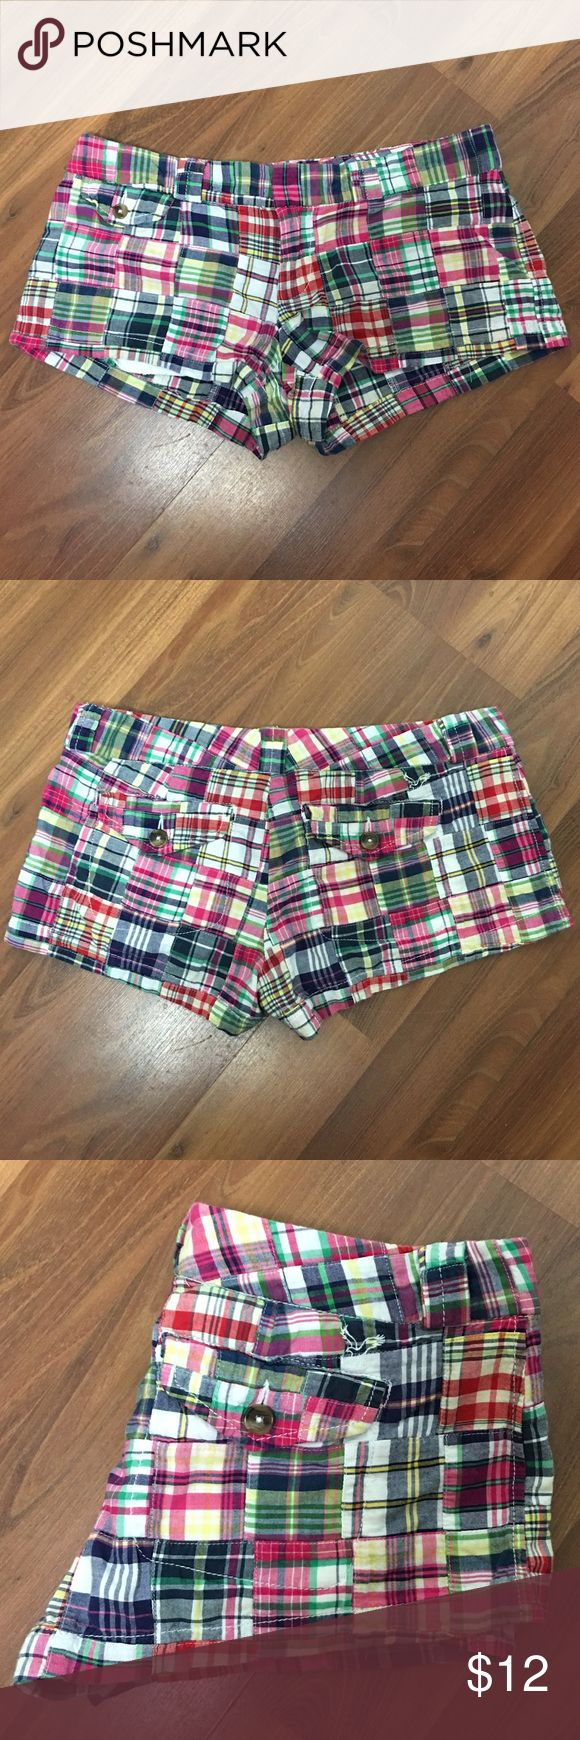 """American Outfitters plaid Favorite Shirts American Outfitters plaid Favorite Shirts. Waist 32"""", Rise 7 1/2"""". Three pocket design with single button, slide hook and zipper closure. American Eagle Outfitters Shorts"""